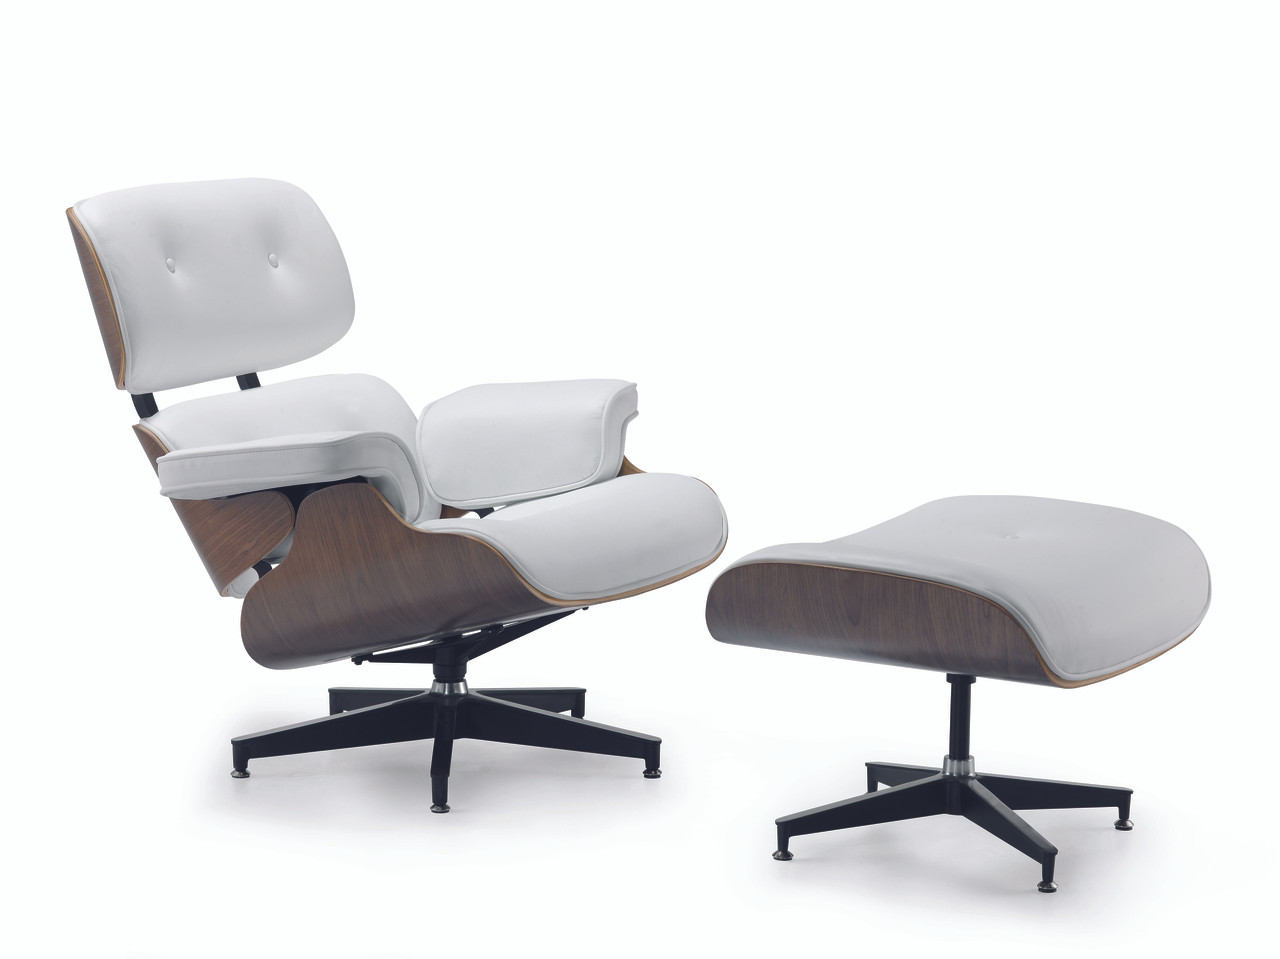 Groovy Replica Eames Lounge Chair Ottoman White Italian Leather Walnut Frame Caraccident5 Cool Chair Designs And Ideas Caraccident5Info